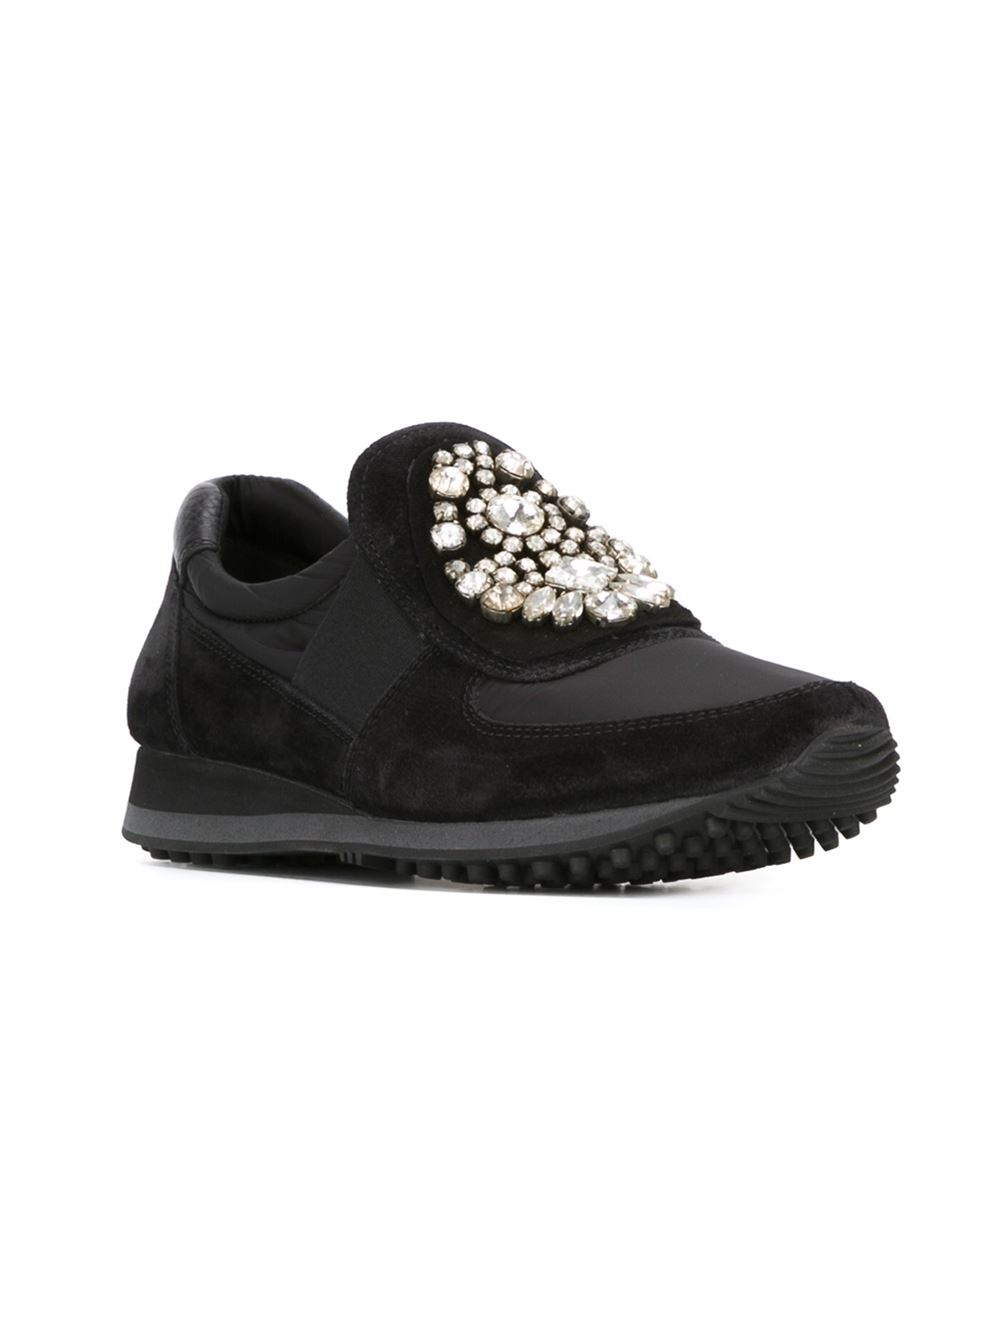 Car Shoe Leather Embellished Sneakers